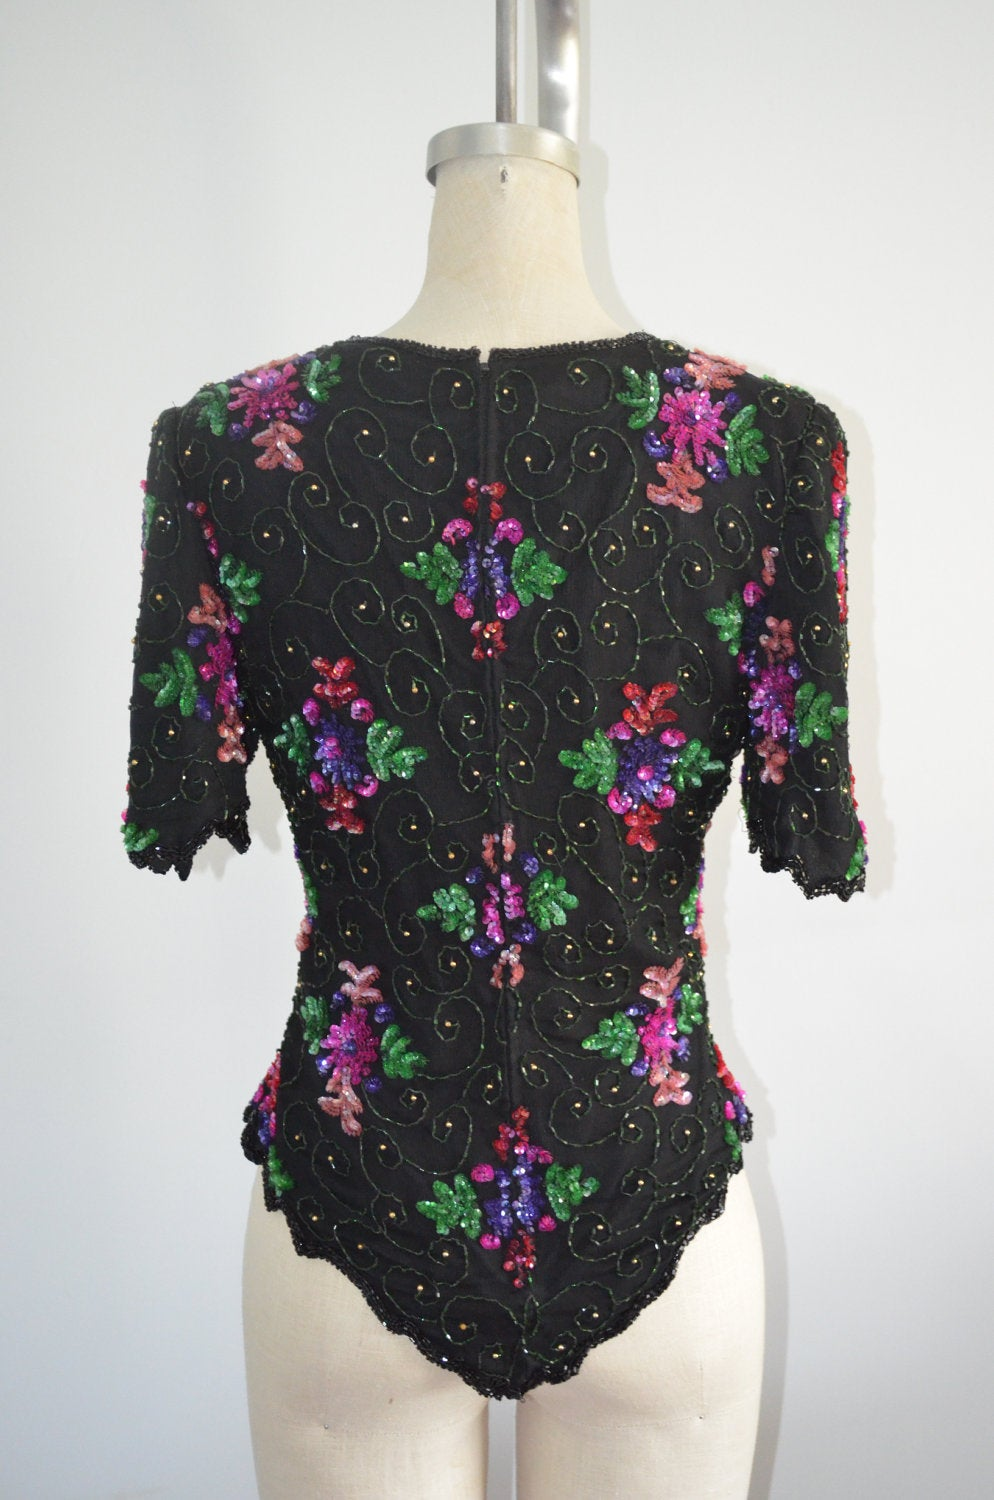 Minimalist Sequins Laurence Kazar Floral Sequined Beaded Silk Top Blouse